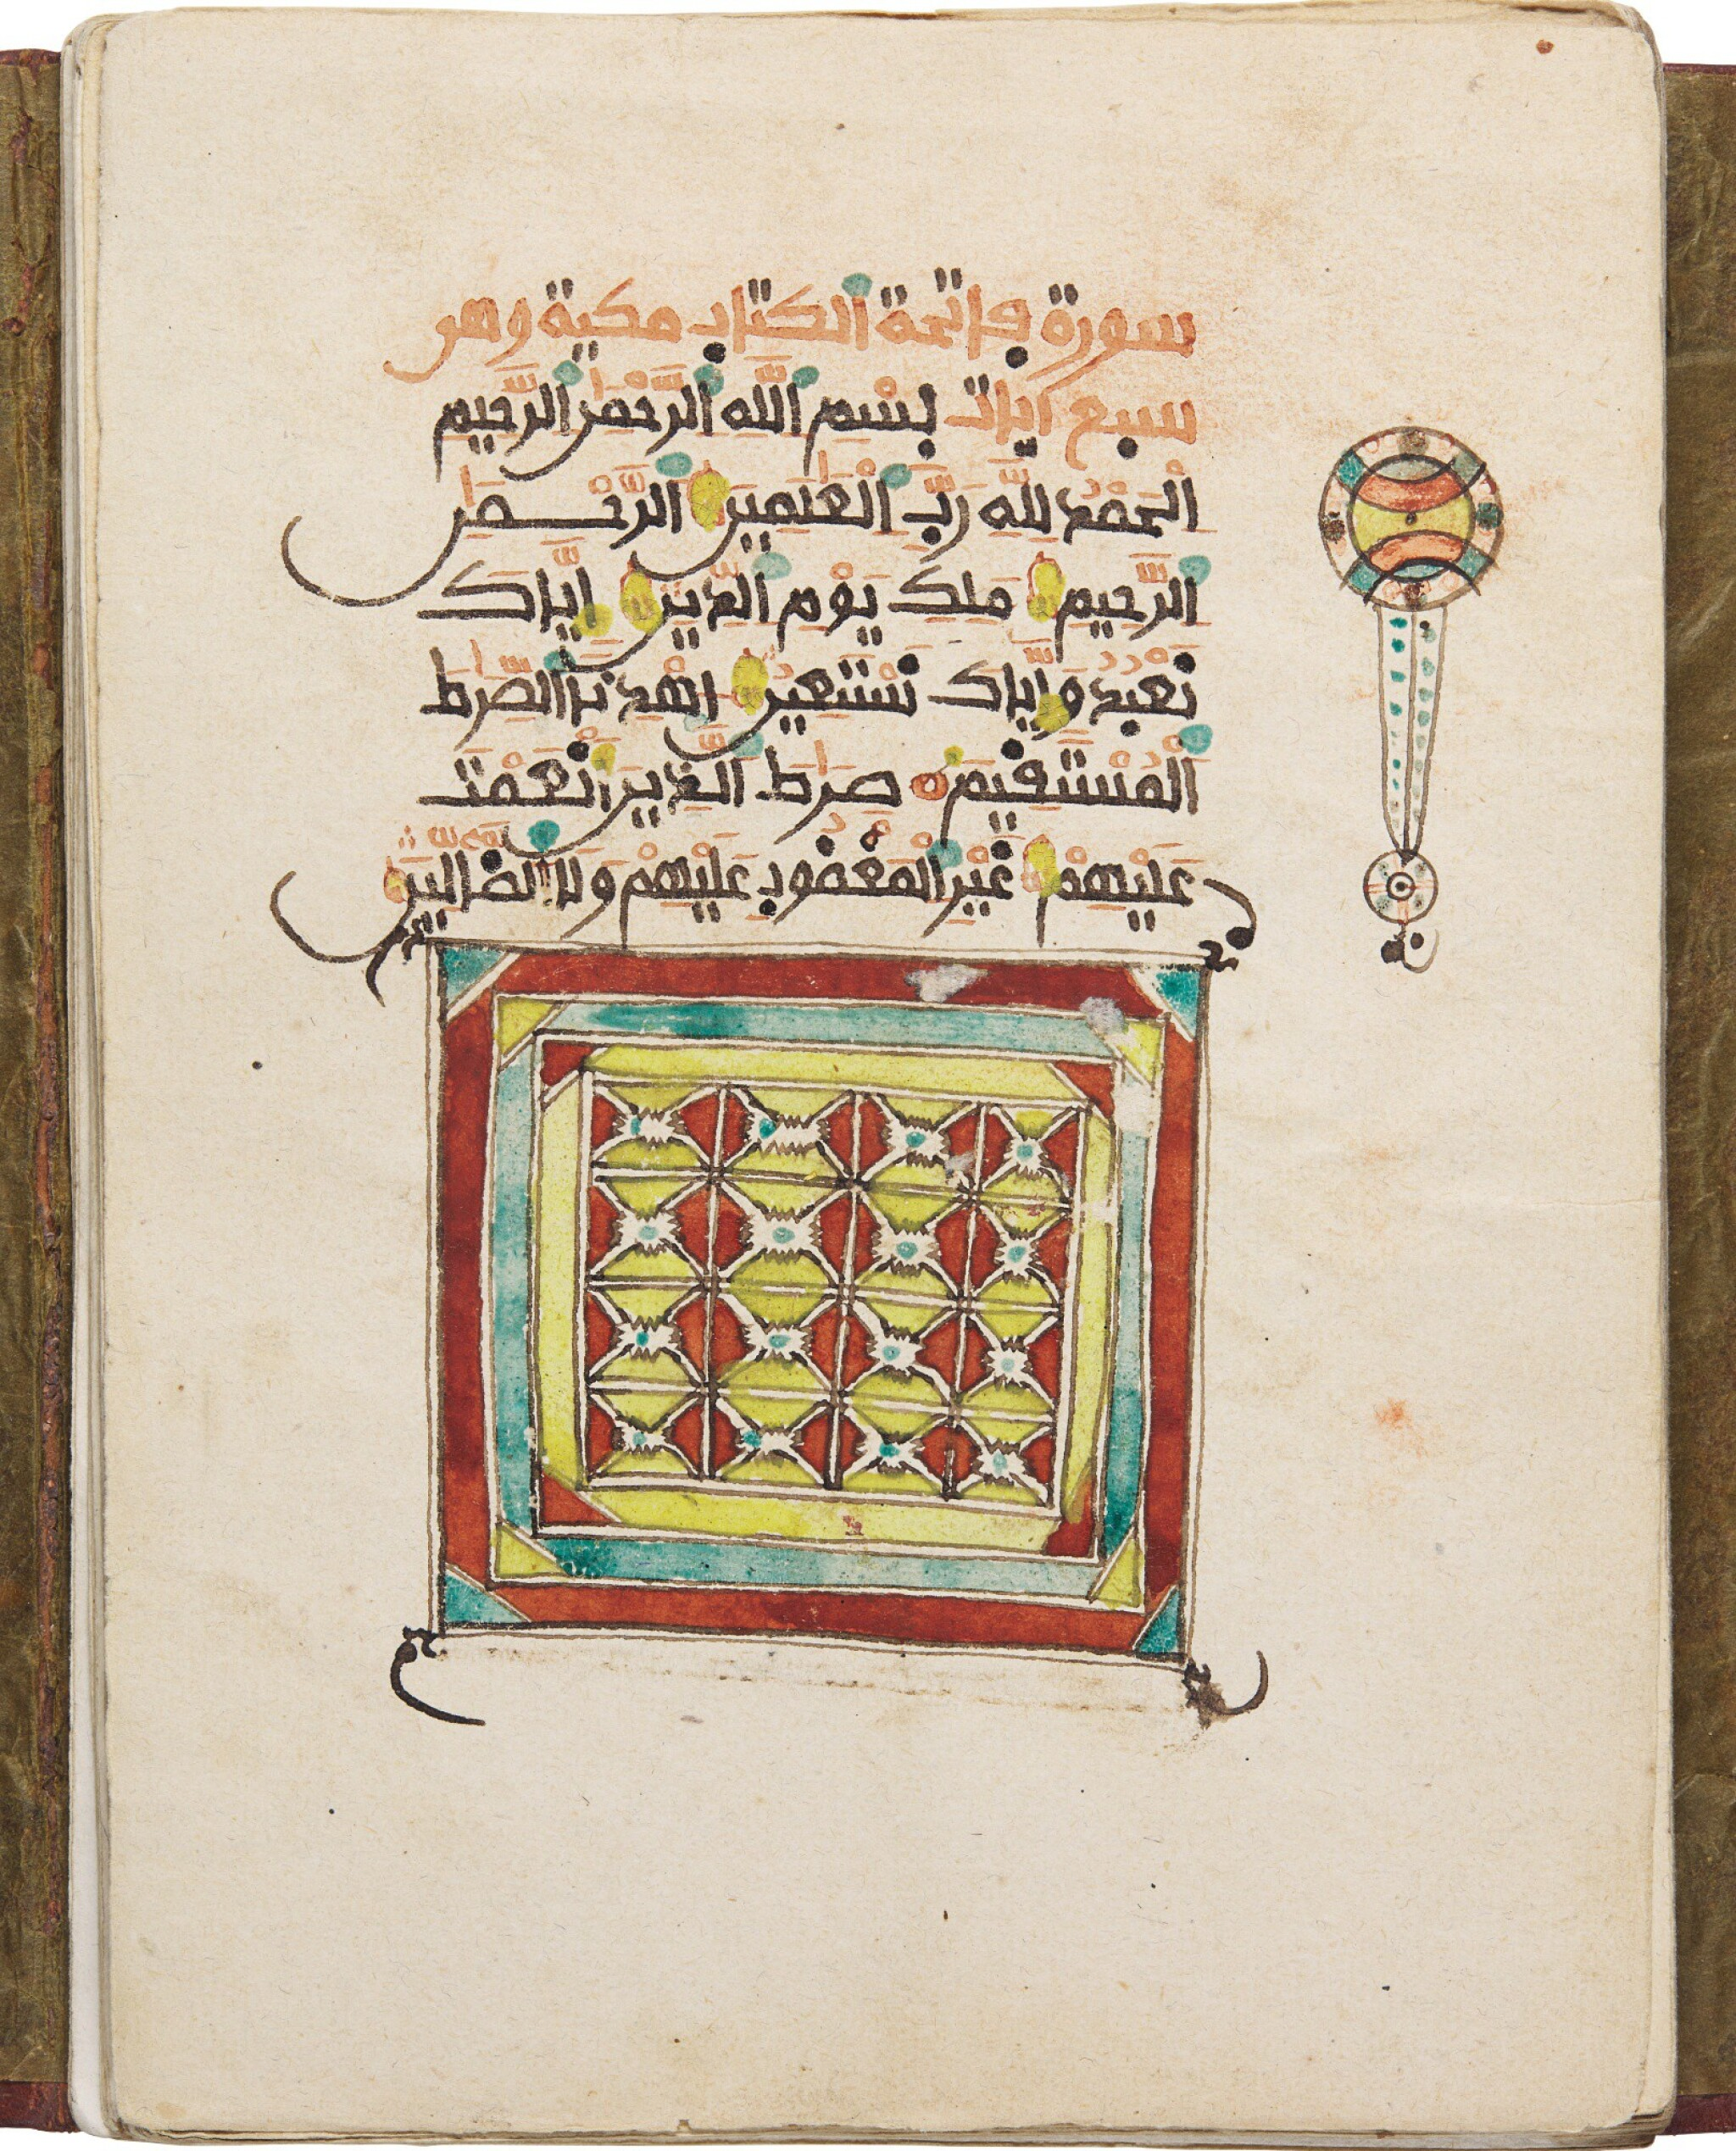 View full screen - View 1 of Lot 55. A QUR'AN, SUB-SAHARAN WEST AFRICA, SECOND HALF 19TH CENTURY.